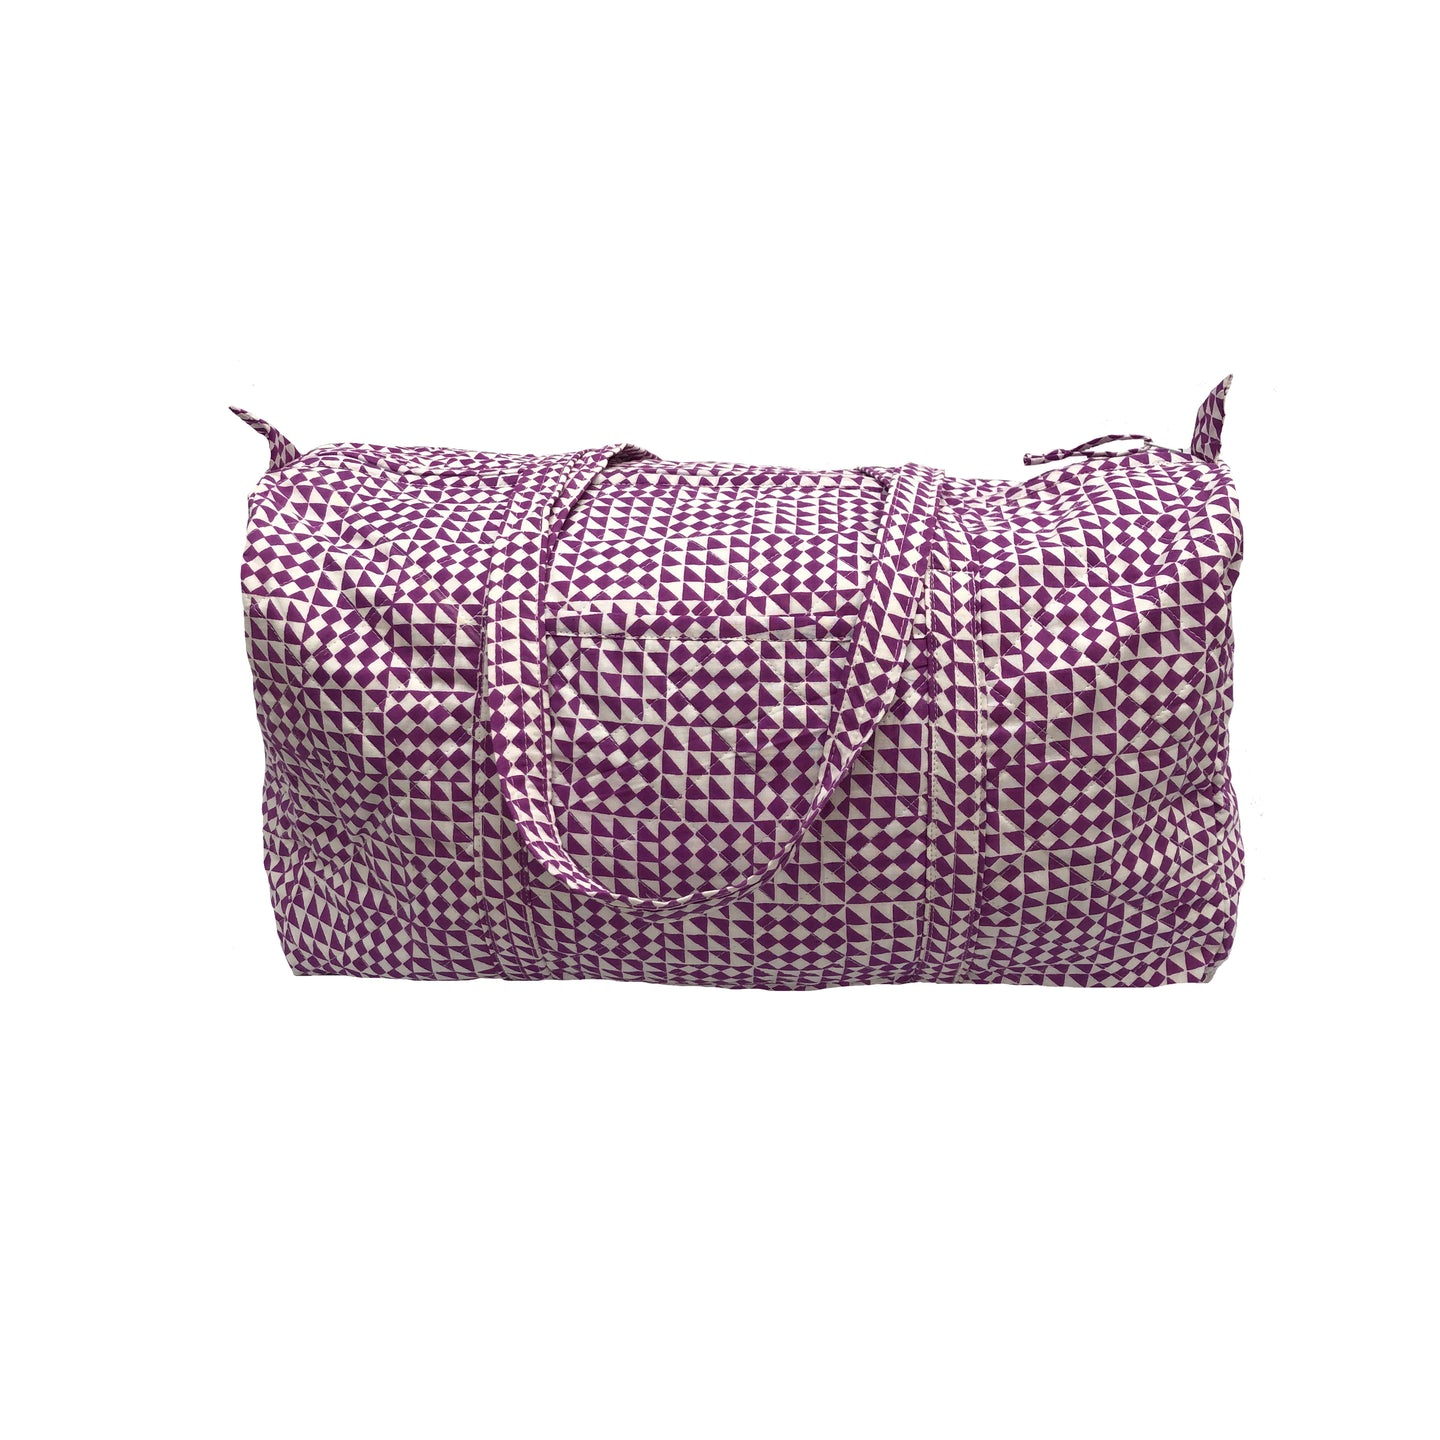 Medium Duffle Bag - Purple